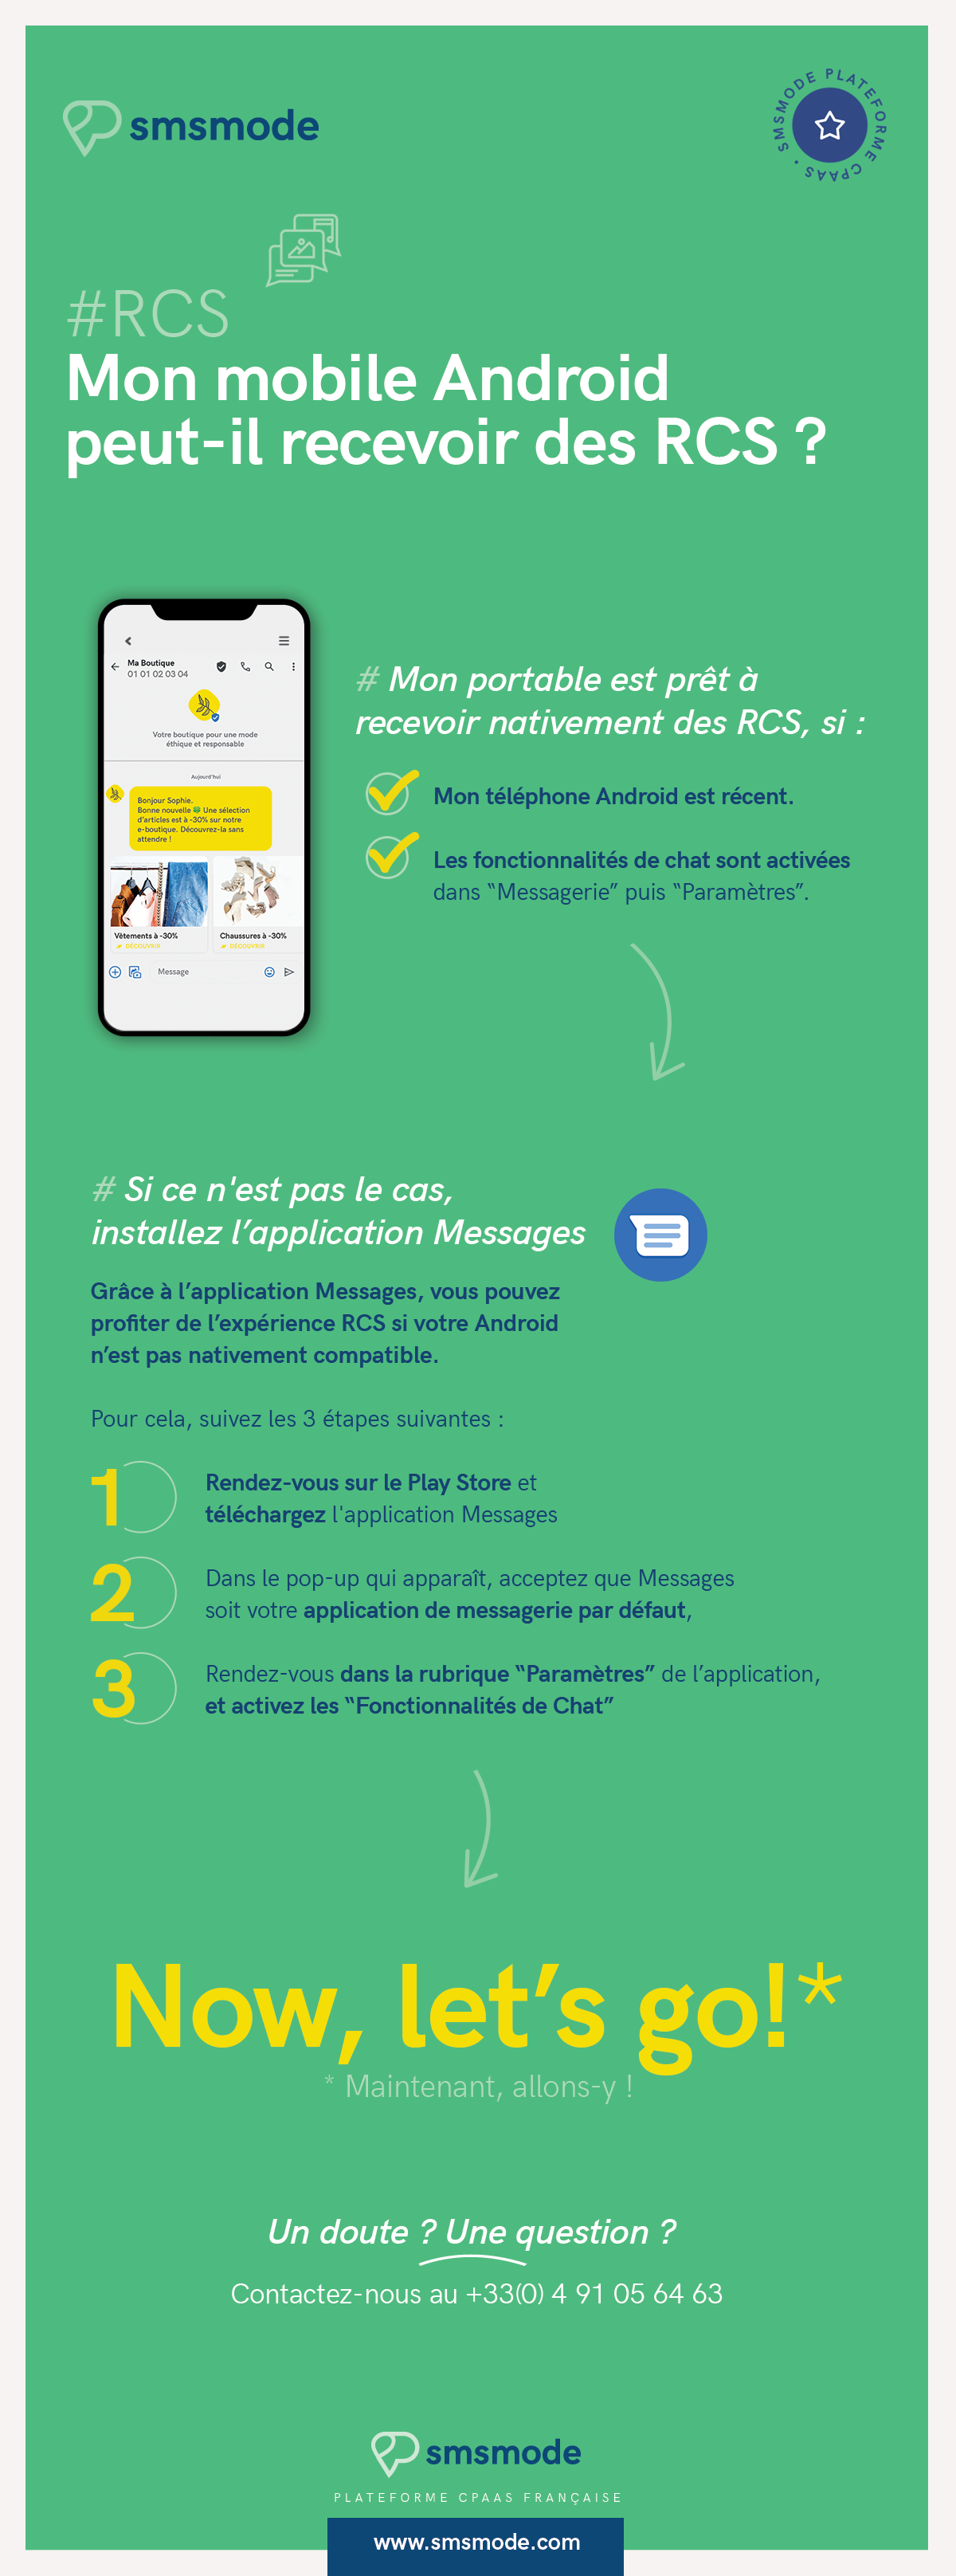 infographic smsmode activation mode RCS mobile